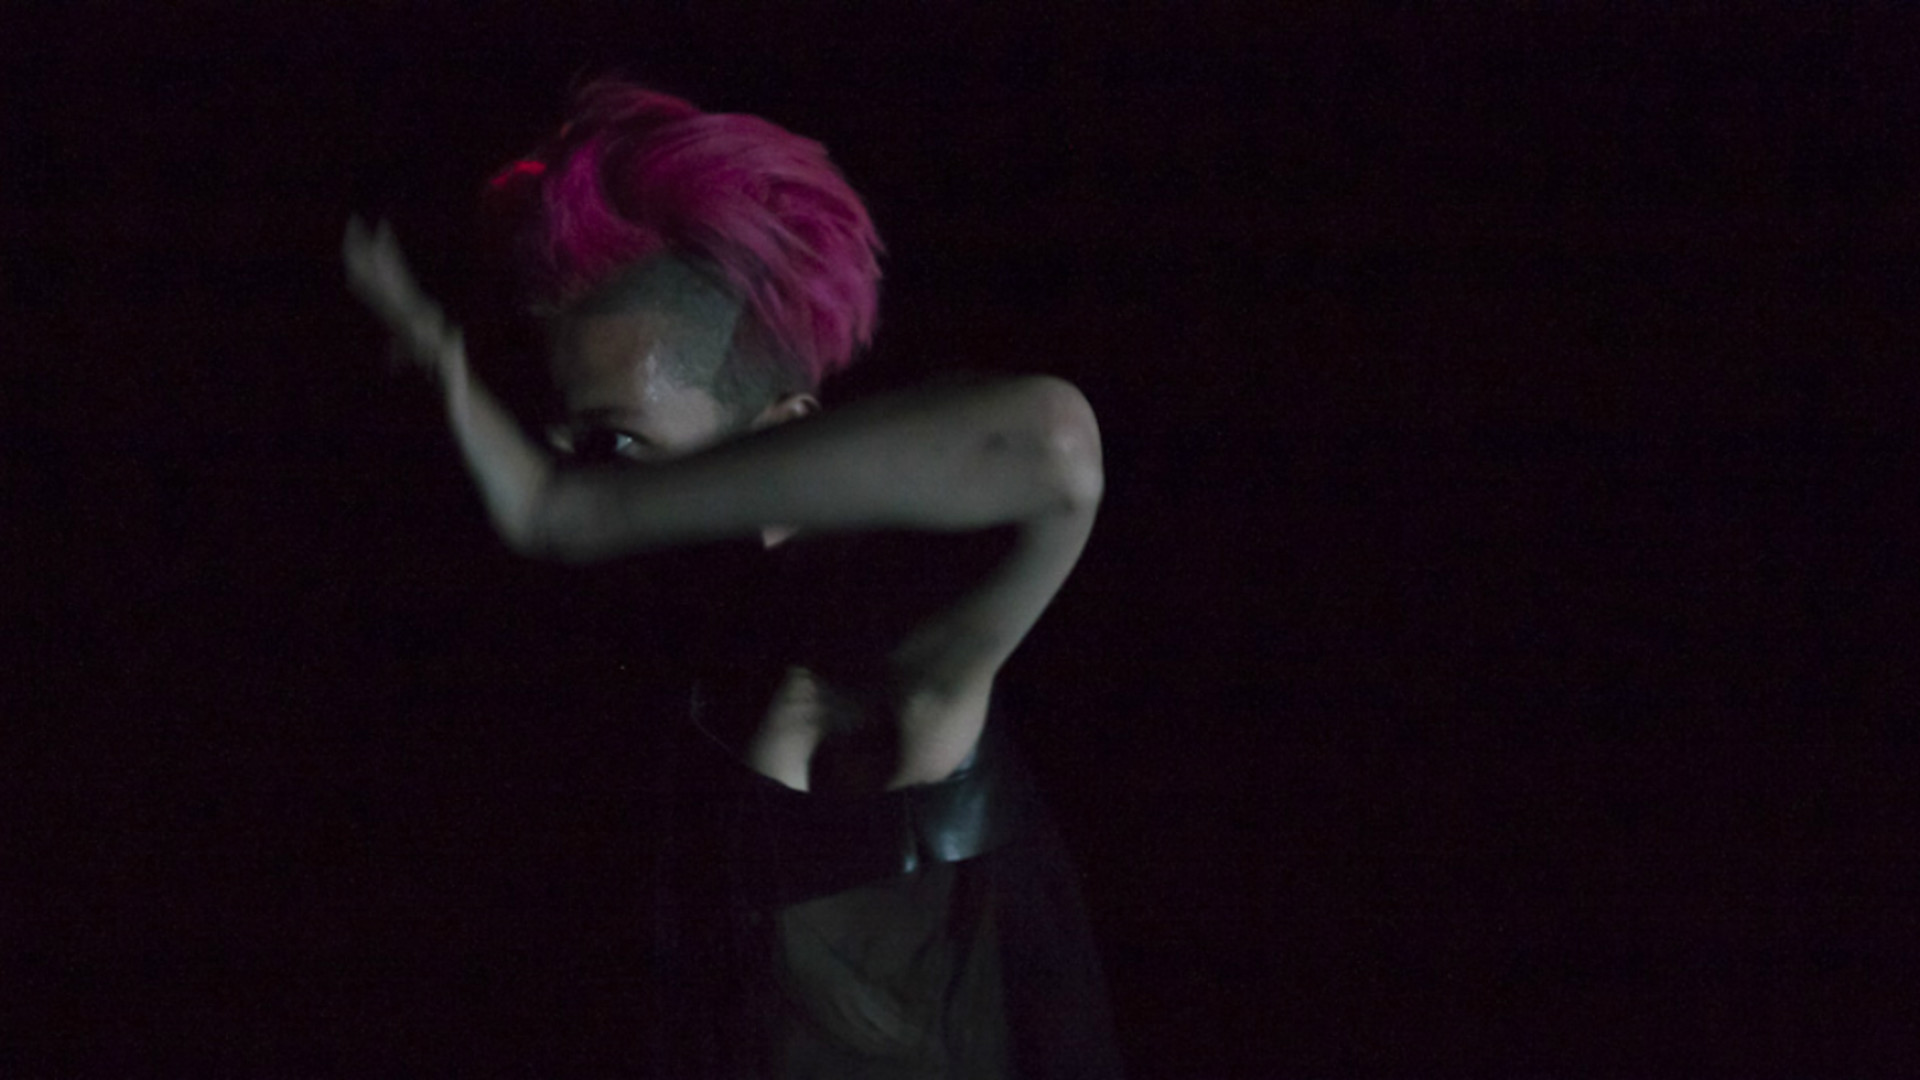 A close up of a dancer with bright pink hair whose right arm is moving in front of their face in a dark room.